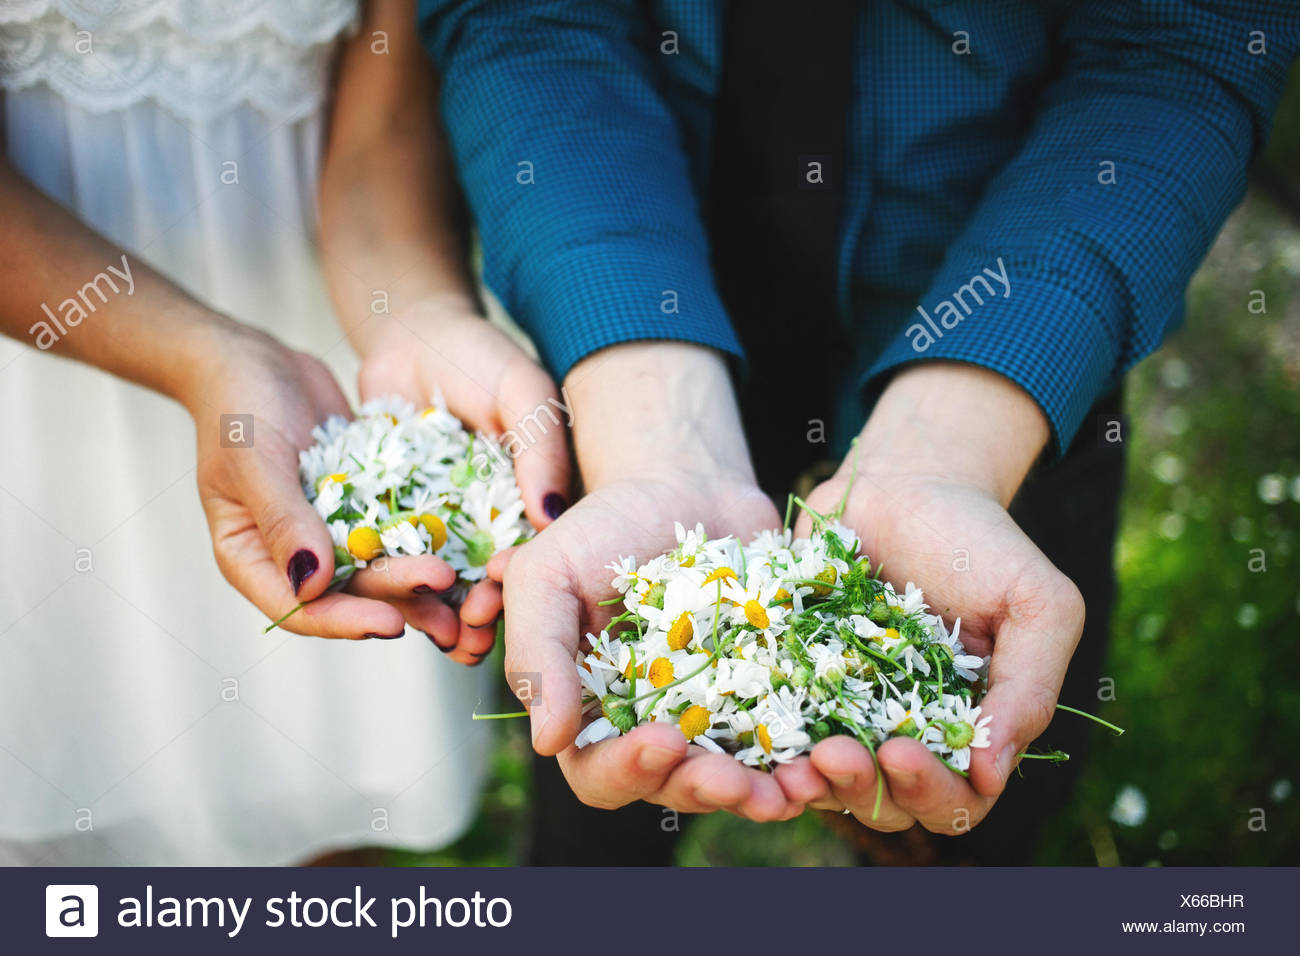 USA, Minnesota, Hennepin County, Minneapolis, Close-up view of hands of young couple, each holding handful of chamomile flowers - Stock Image